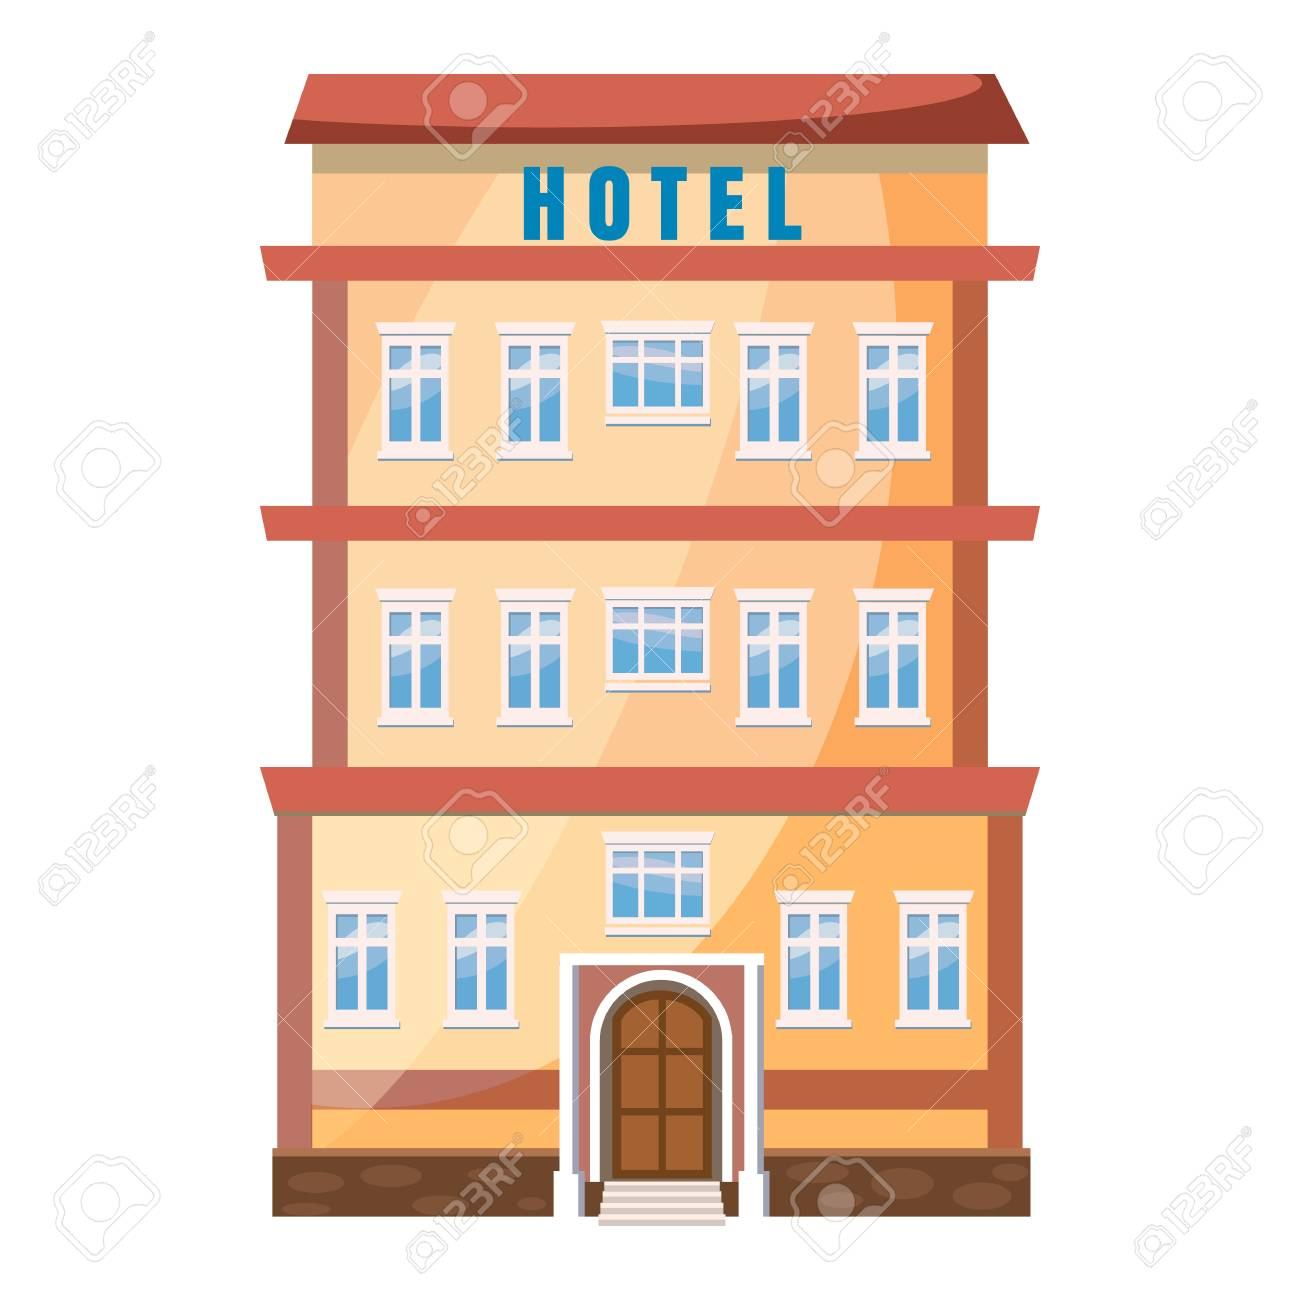 Hotel building icon in cartoon style on a white background.